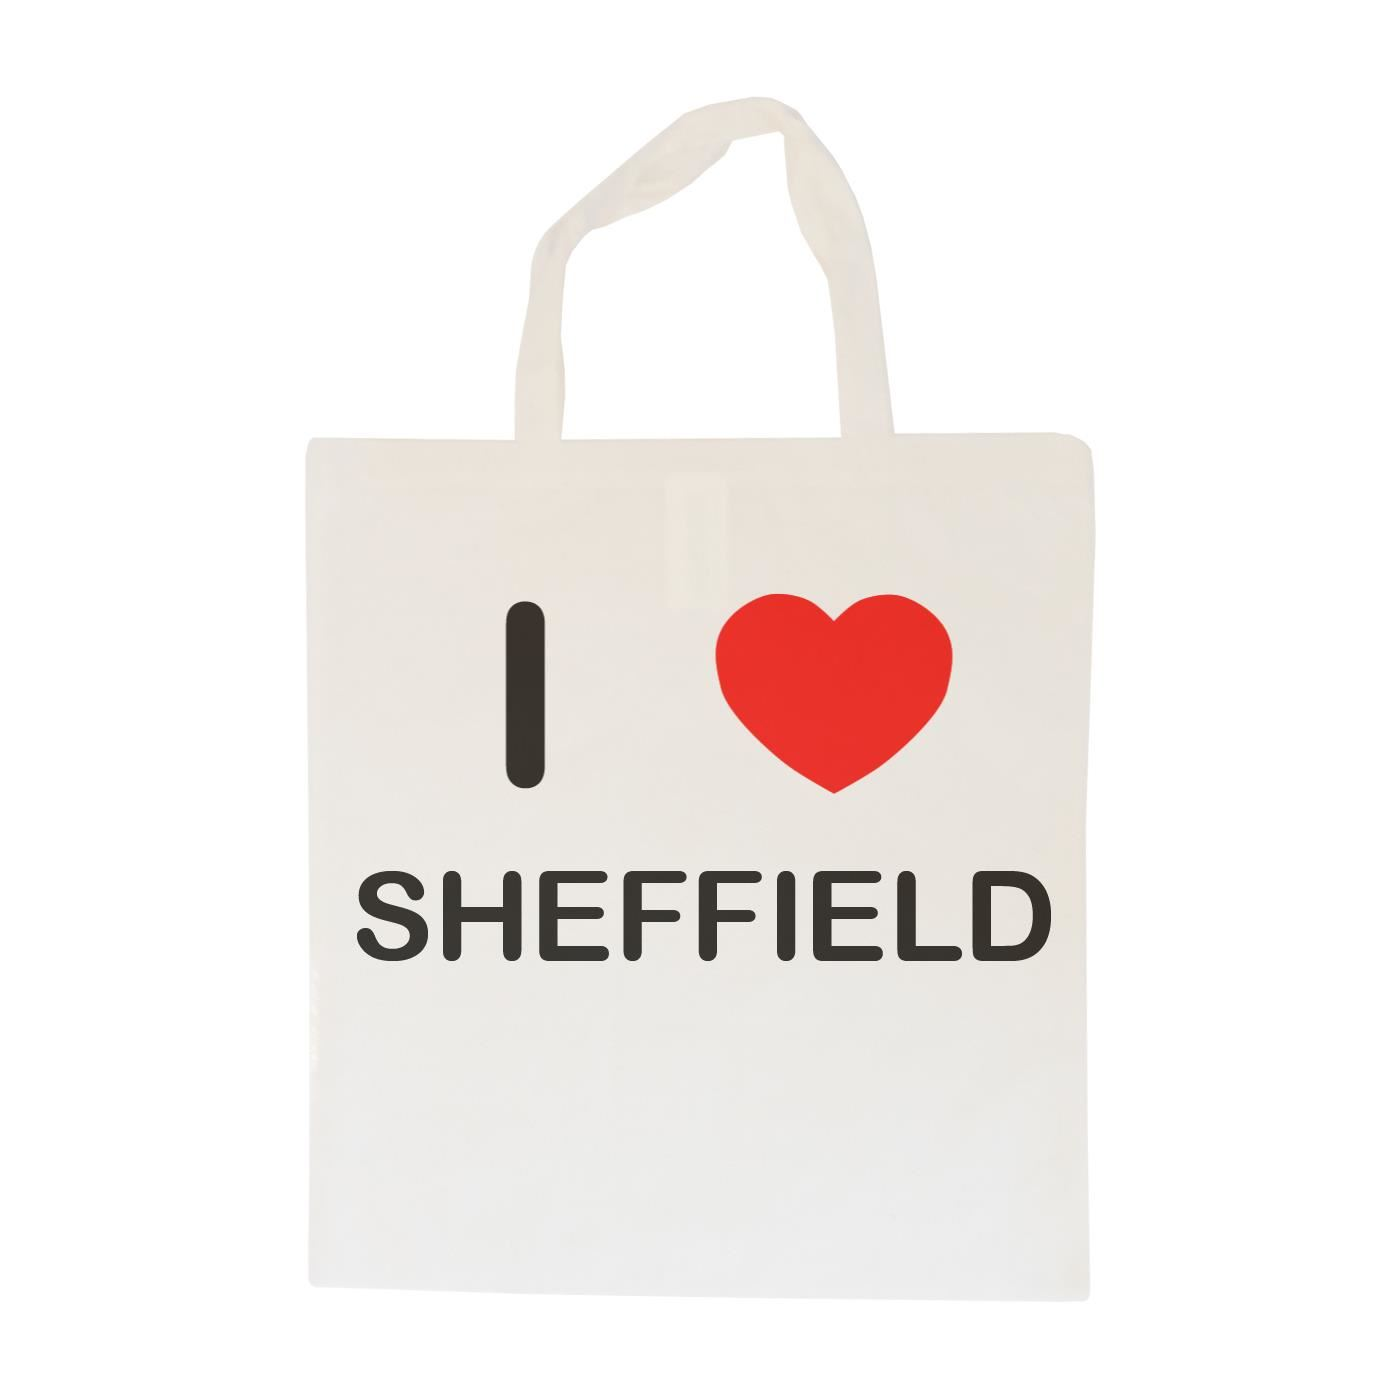 I Love Sheffield - Cotton Bag | Size choice Tote, Shopper or Sling